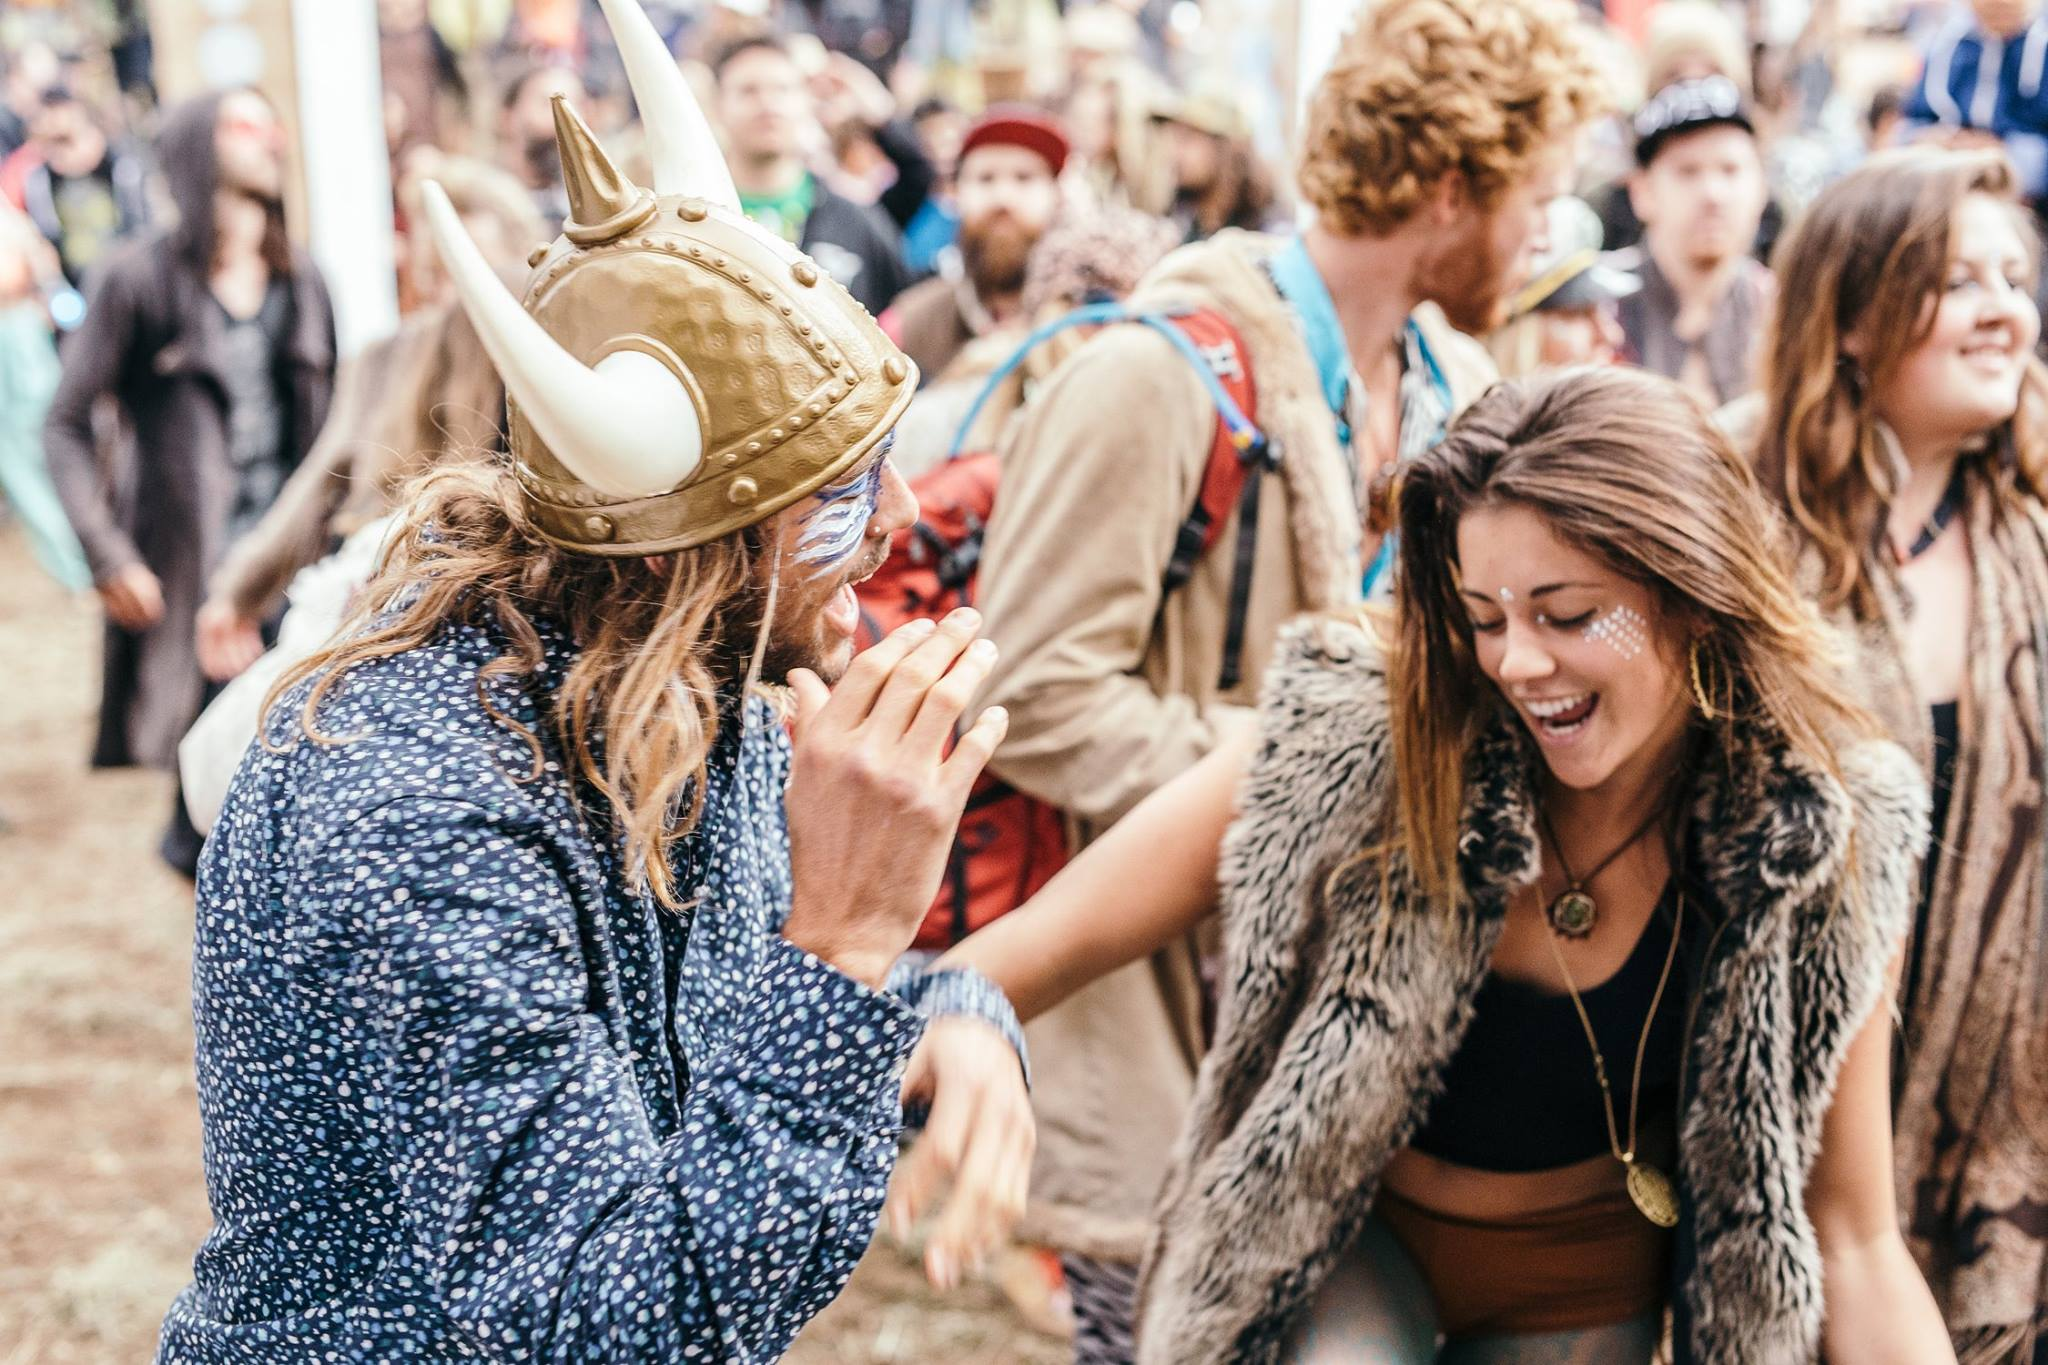 [FEST NEWS] Lucidity Announces It's Lineup: Eudaimonia 2017 – The Final Chapter Of The 6 Year Story